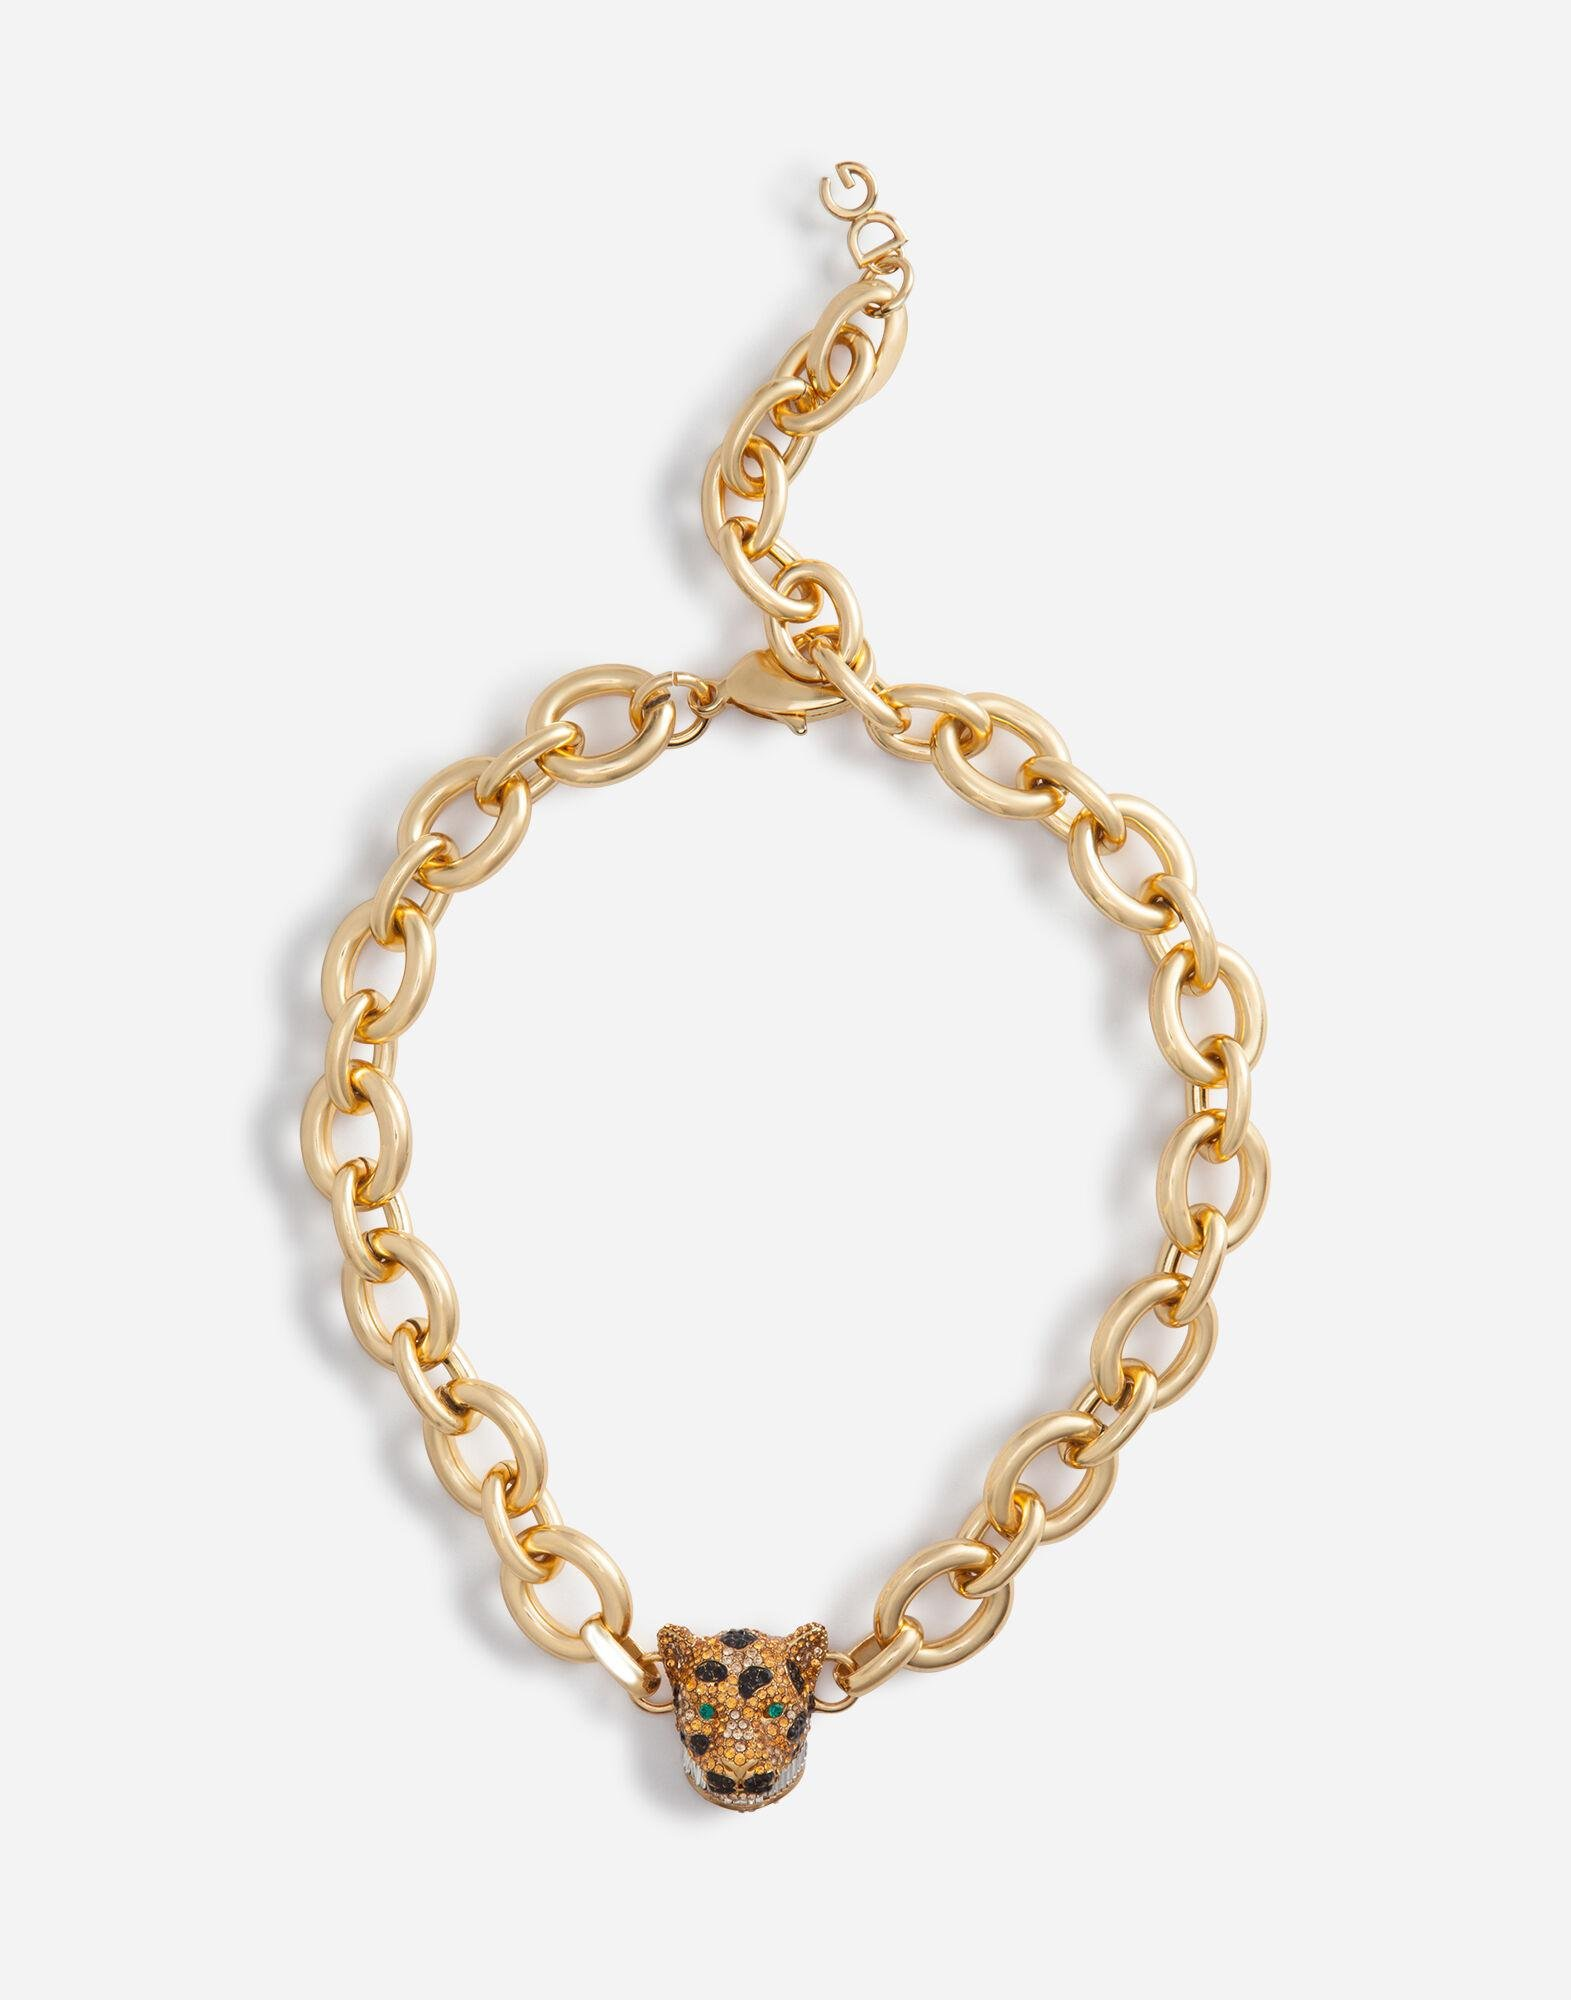 Chain choker necklace with leopard in crystal pavé